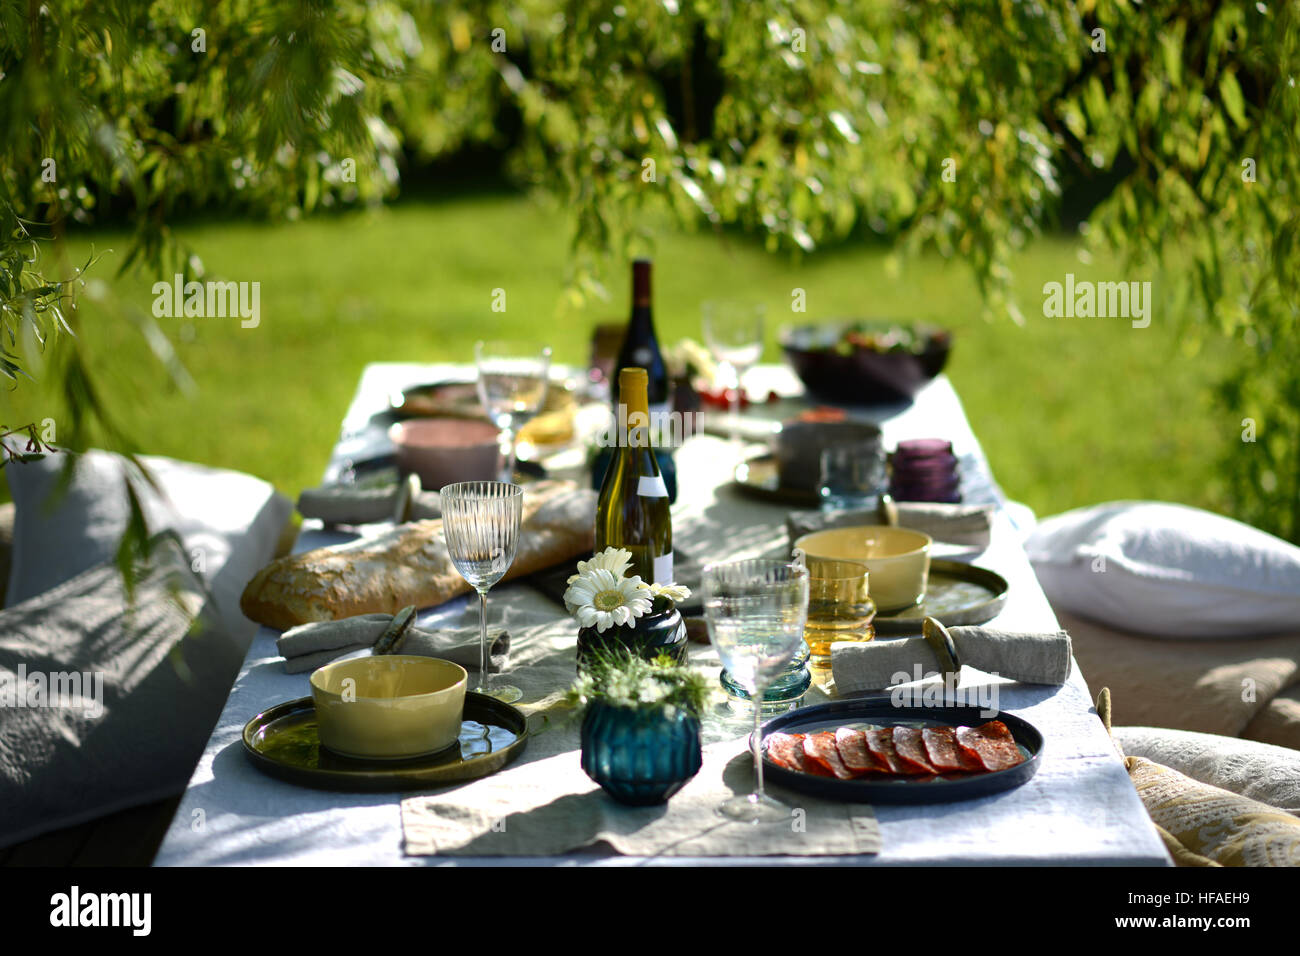 Alfresco dining table set for an evening meal outside Stock Photo